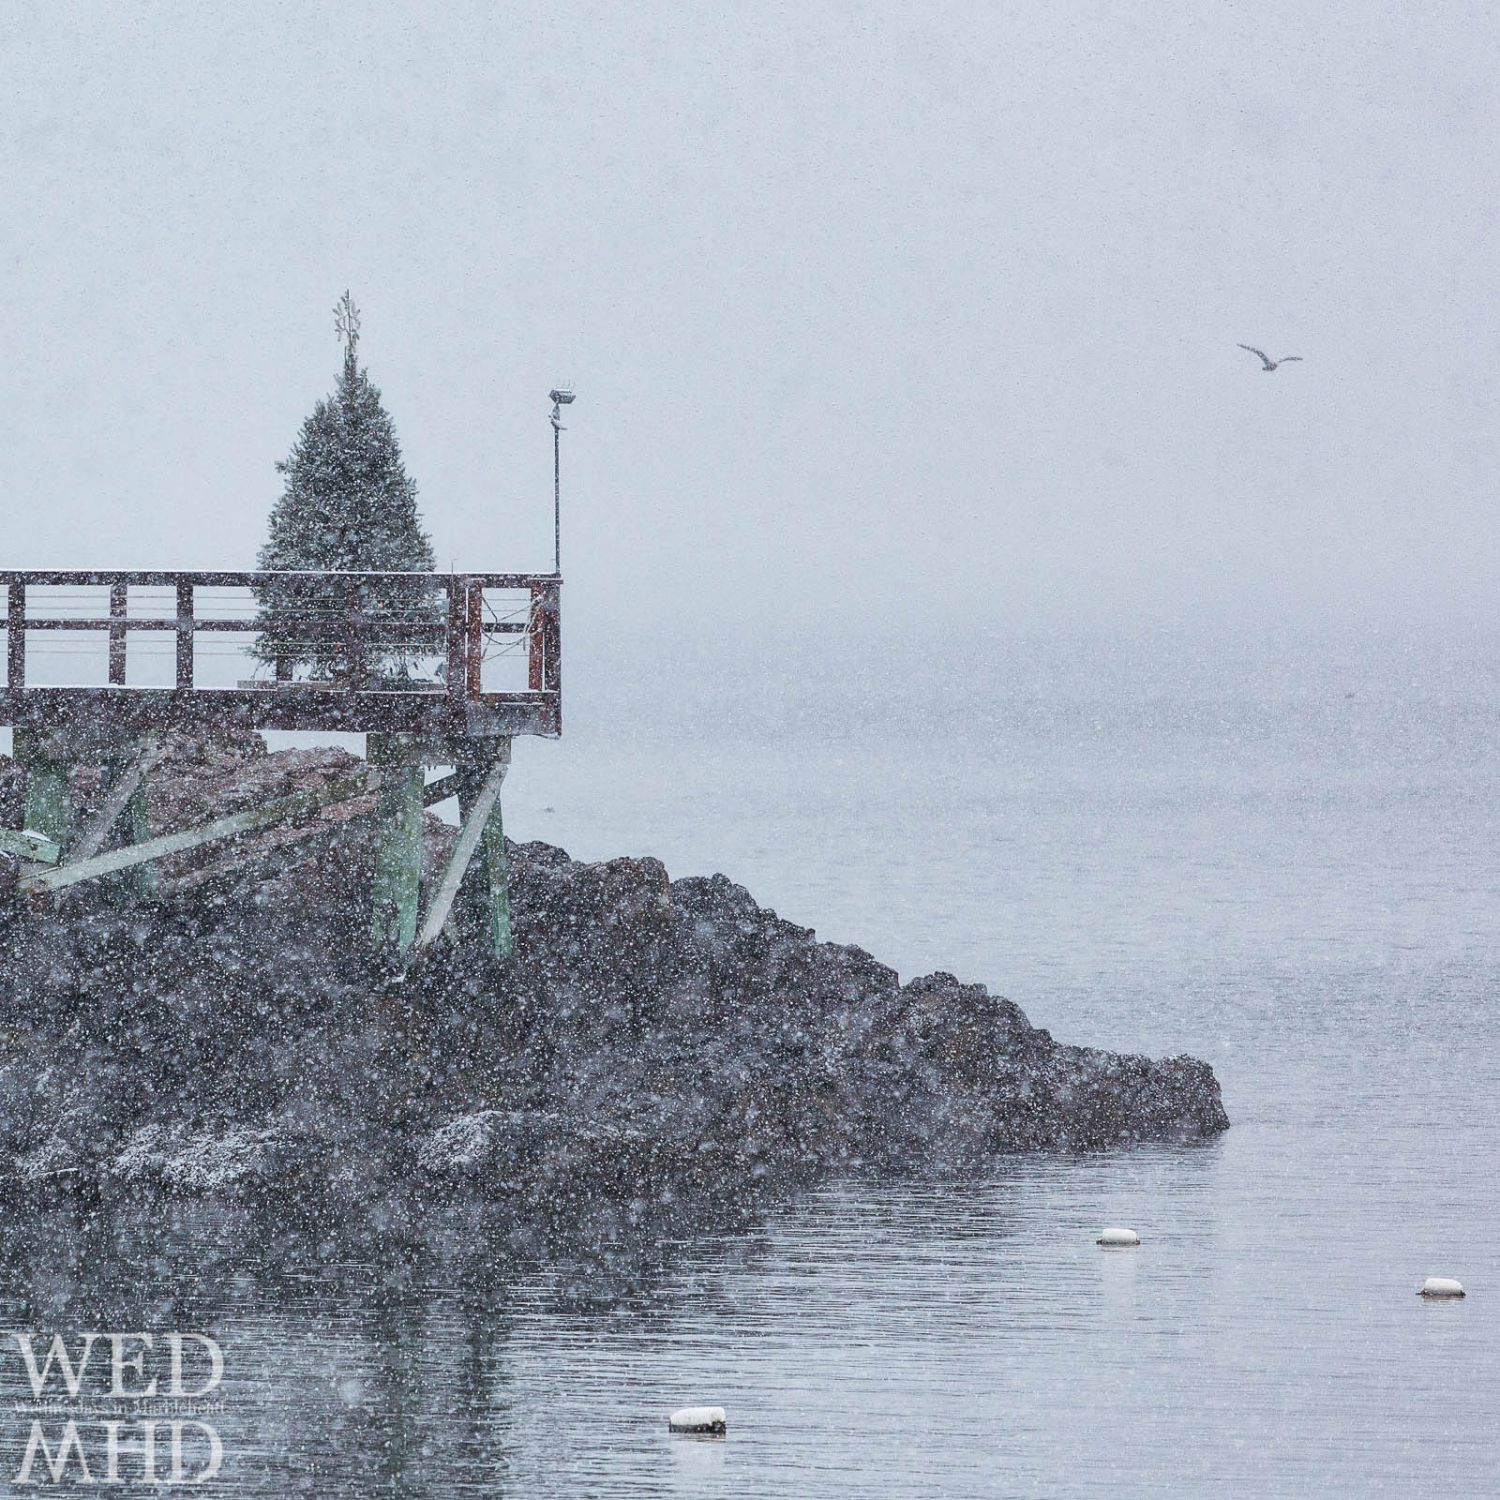 Have to make due with winds and rain this year but here is the view of what a white Christmas in Marblehead would look like